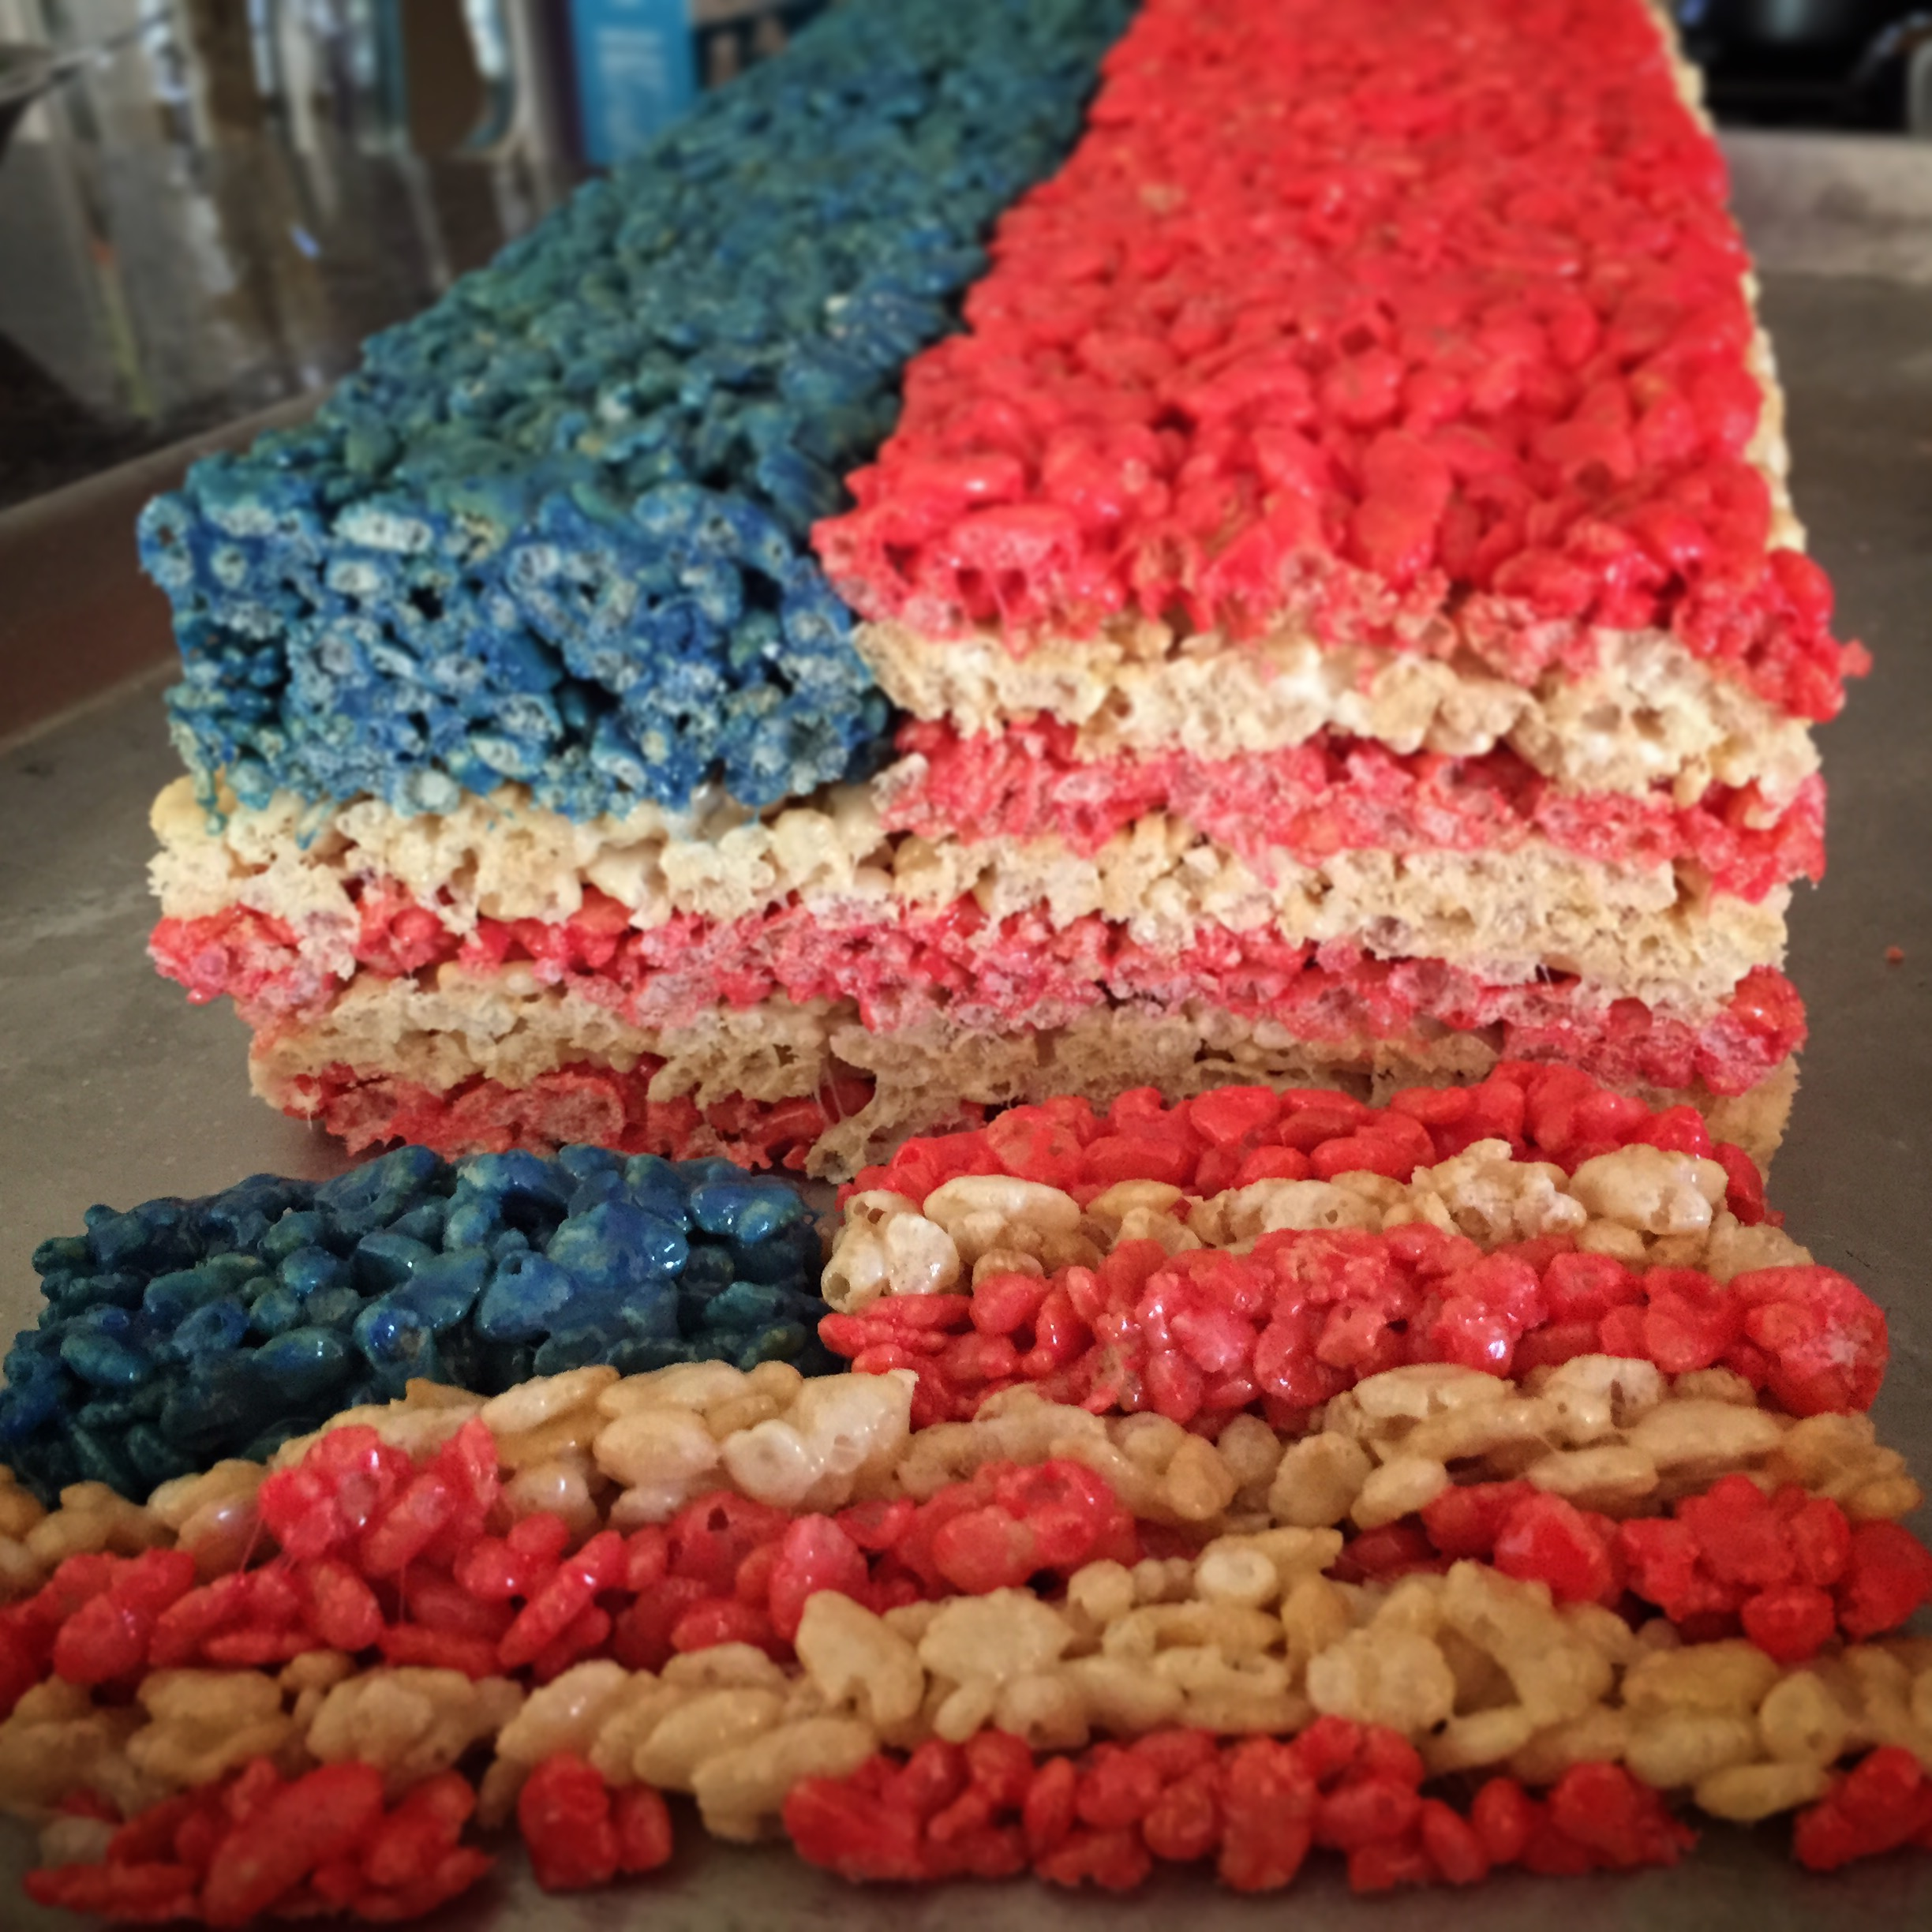 A long rectangle of rice krispie treats with one slice removed. The cross-section reveals an American Flag design.